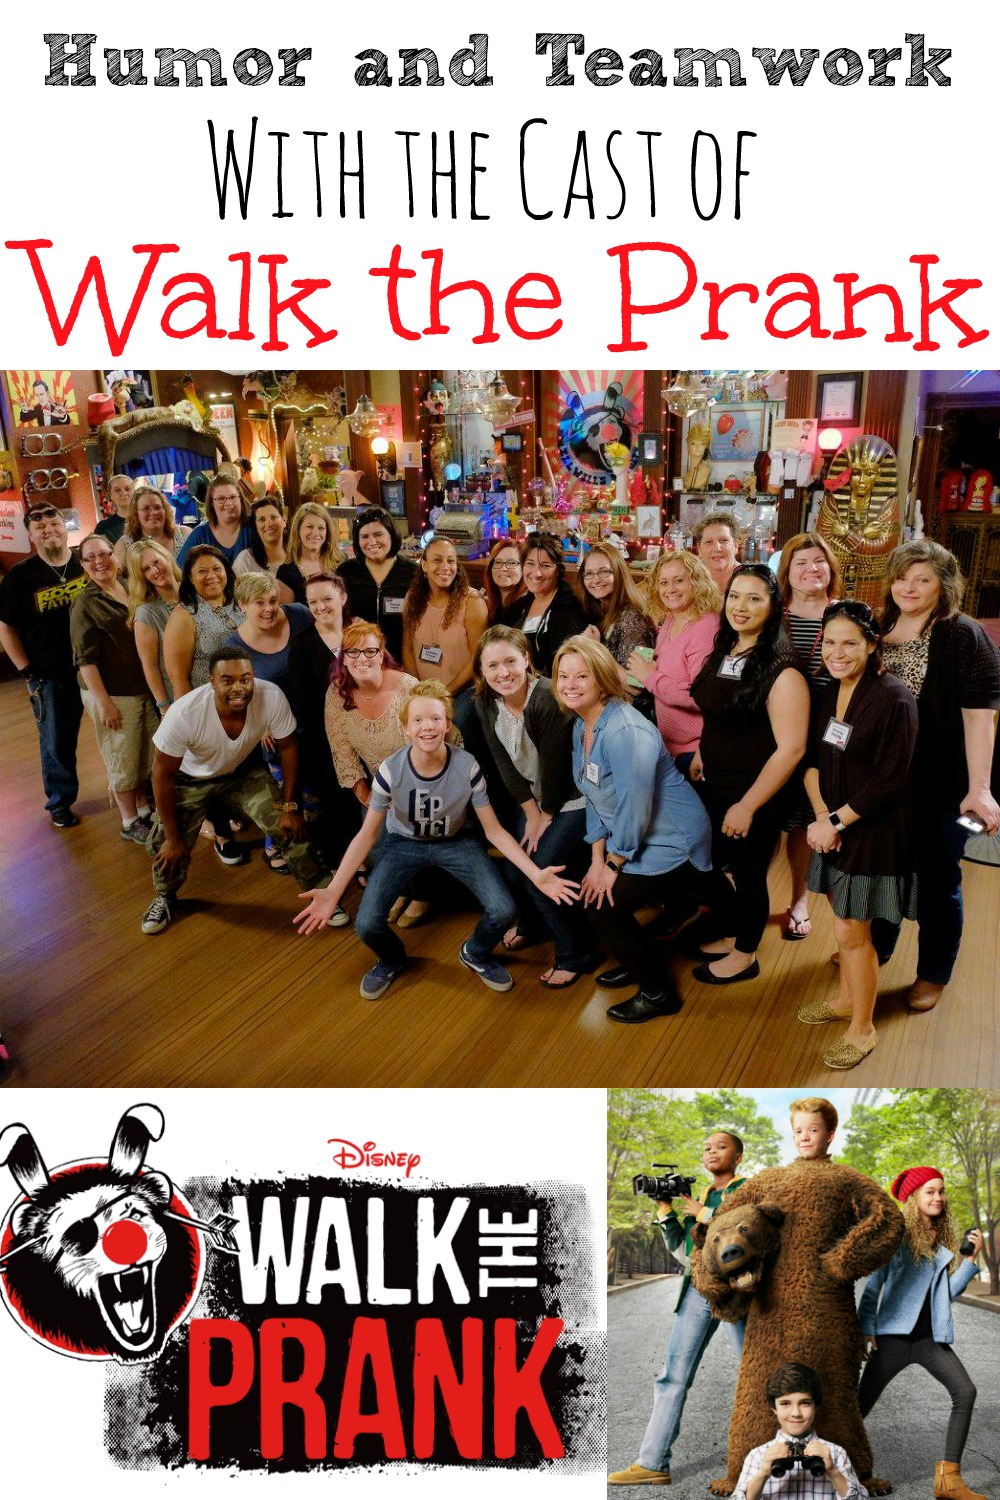 Humor and Teamwork With the Cast of Walk the Prank